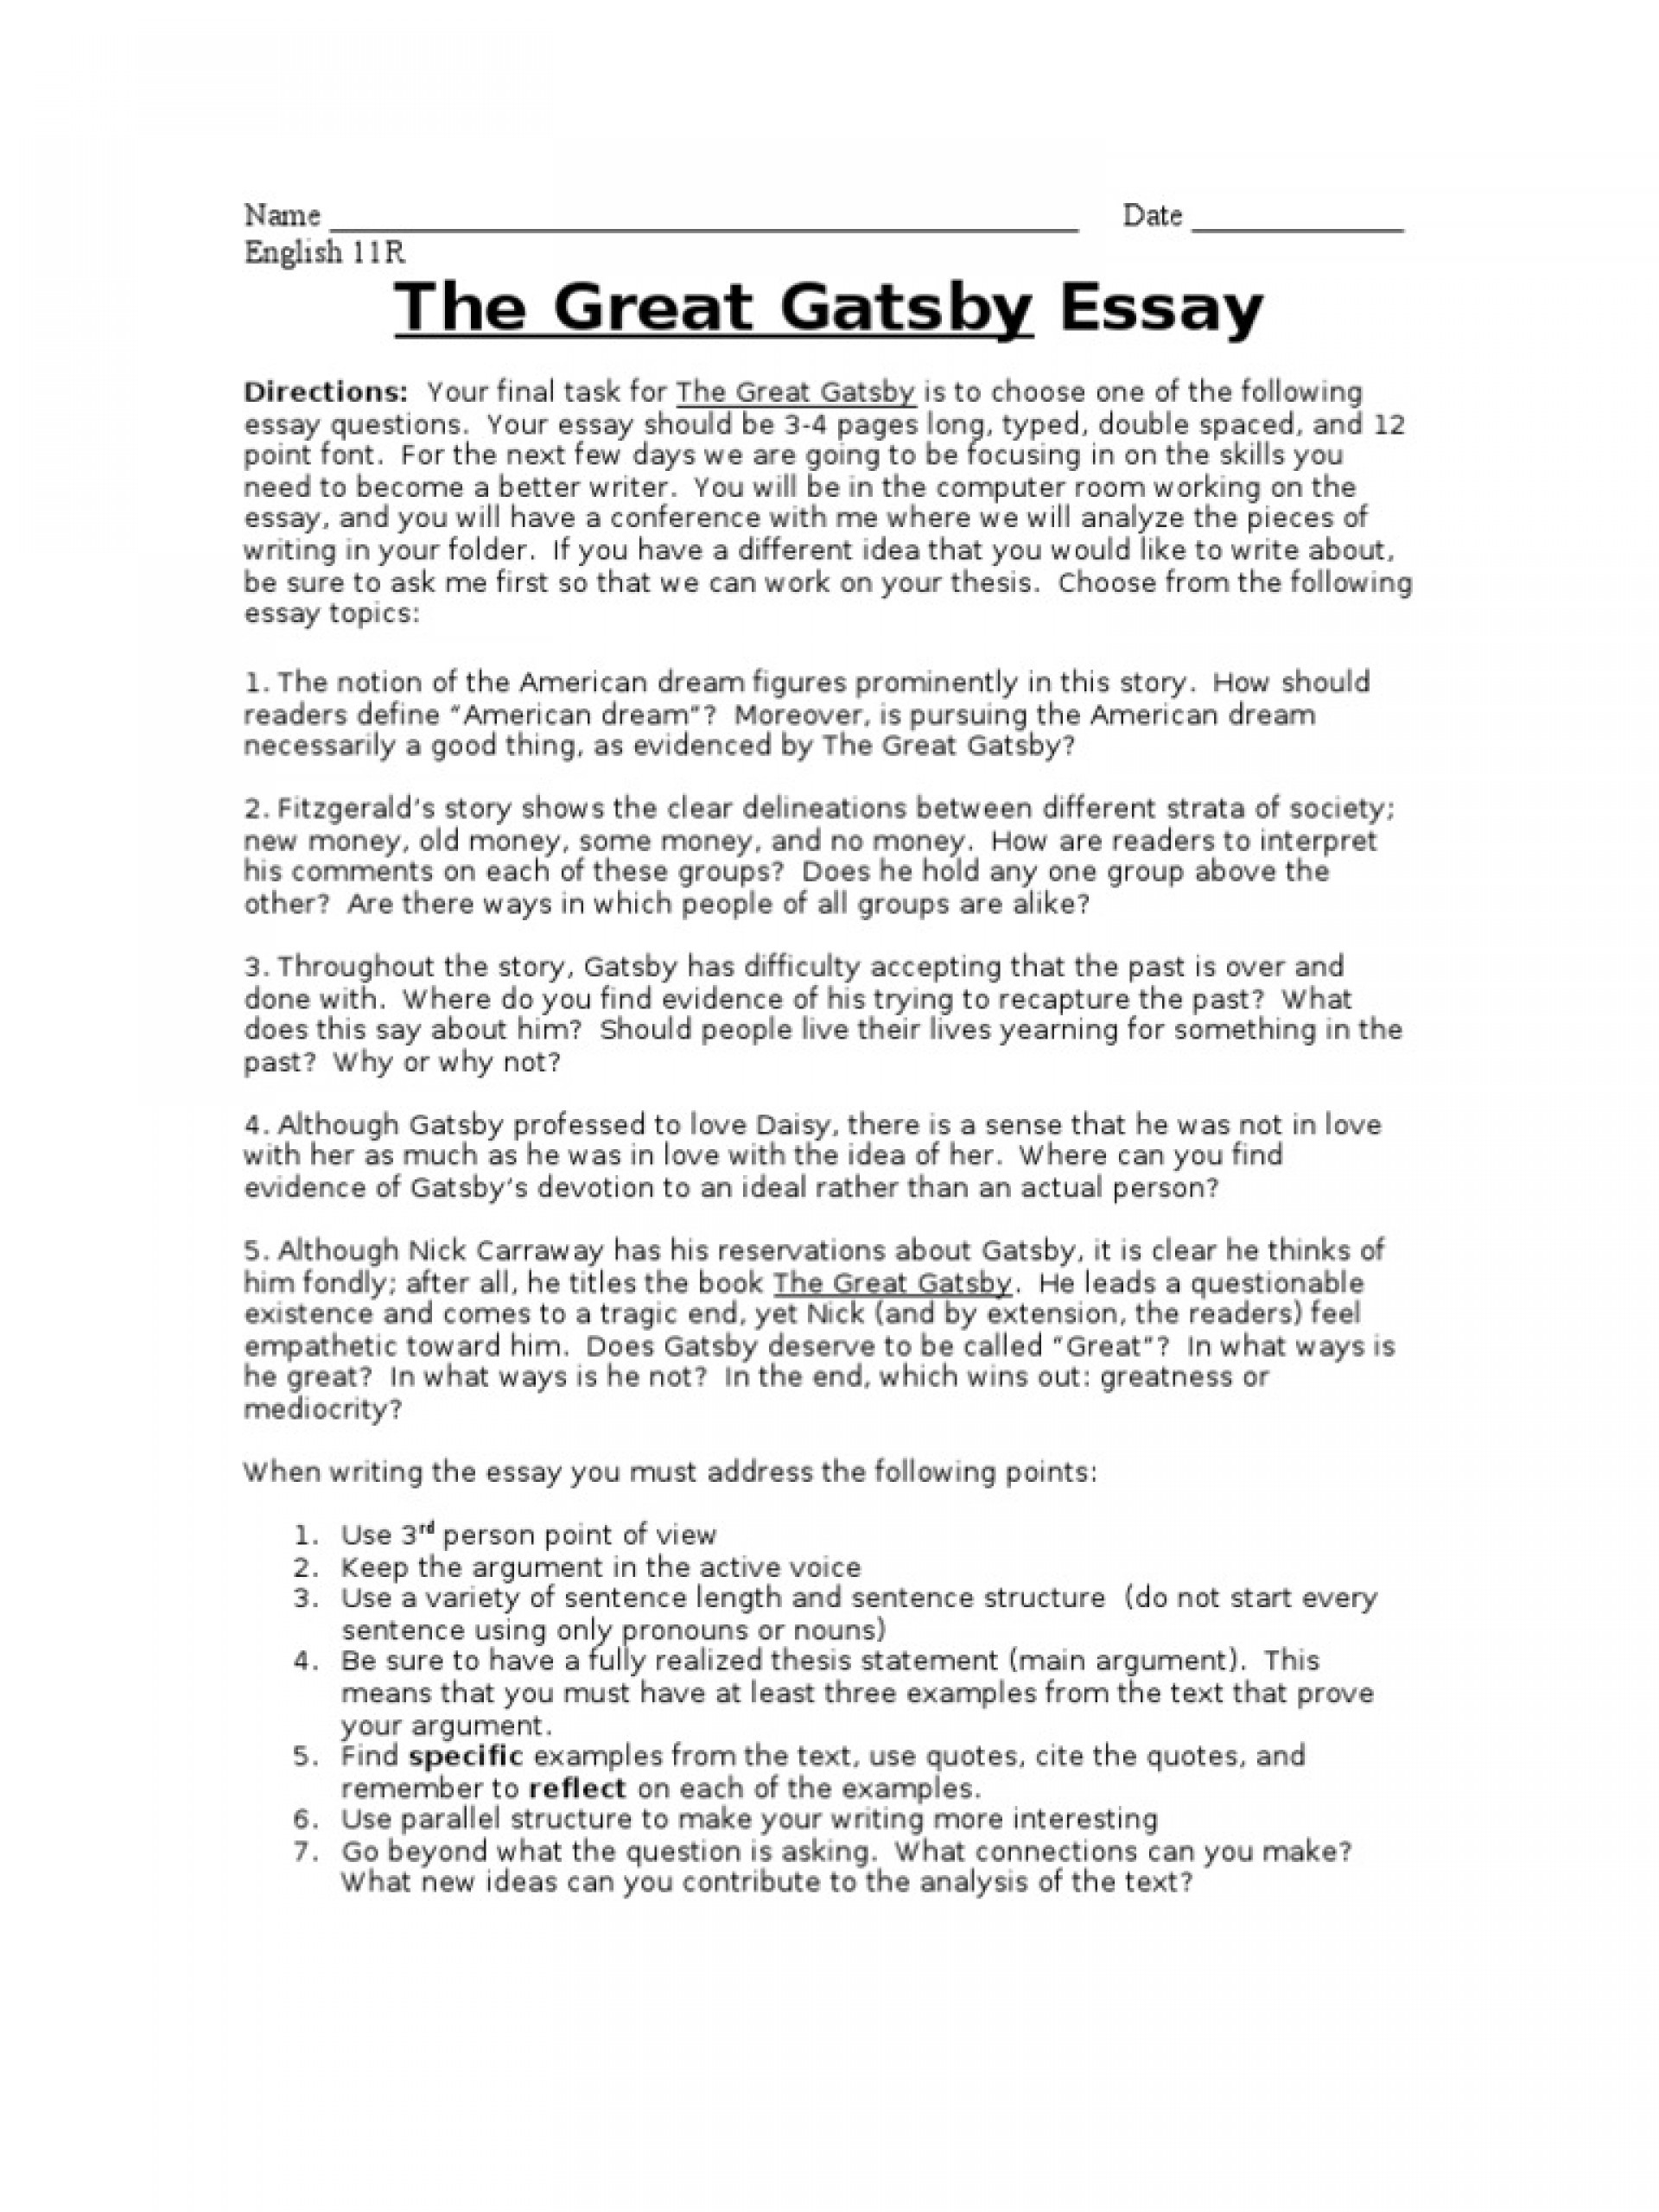 great gatsby american dream essay example the argument scott    essay example the great gatsby final ddbdfdbdb  american fantastic dream conclusion prompt synthesis